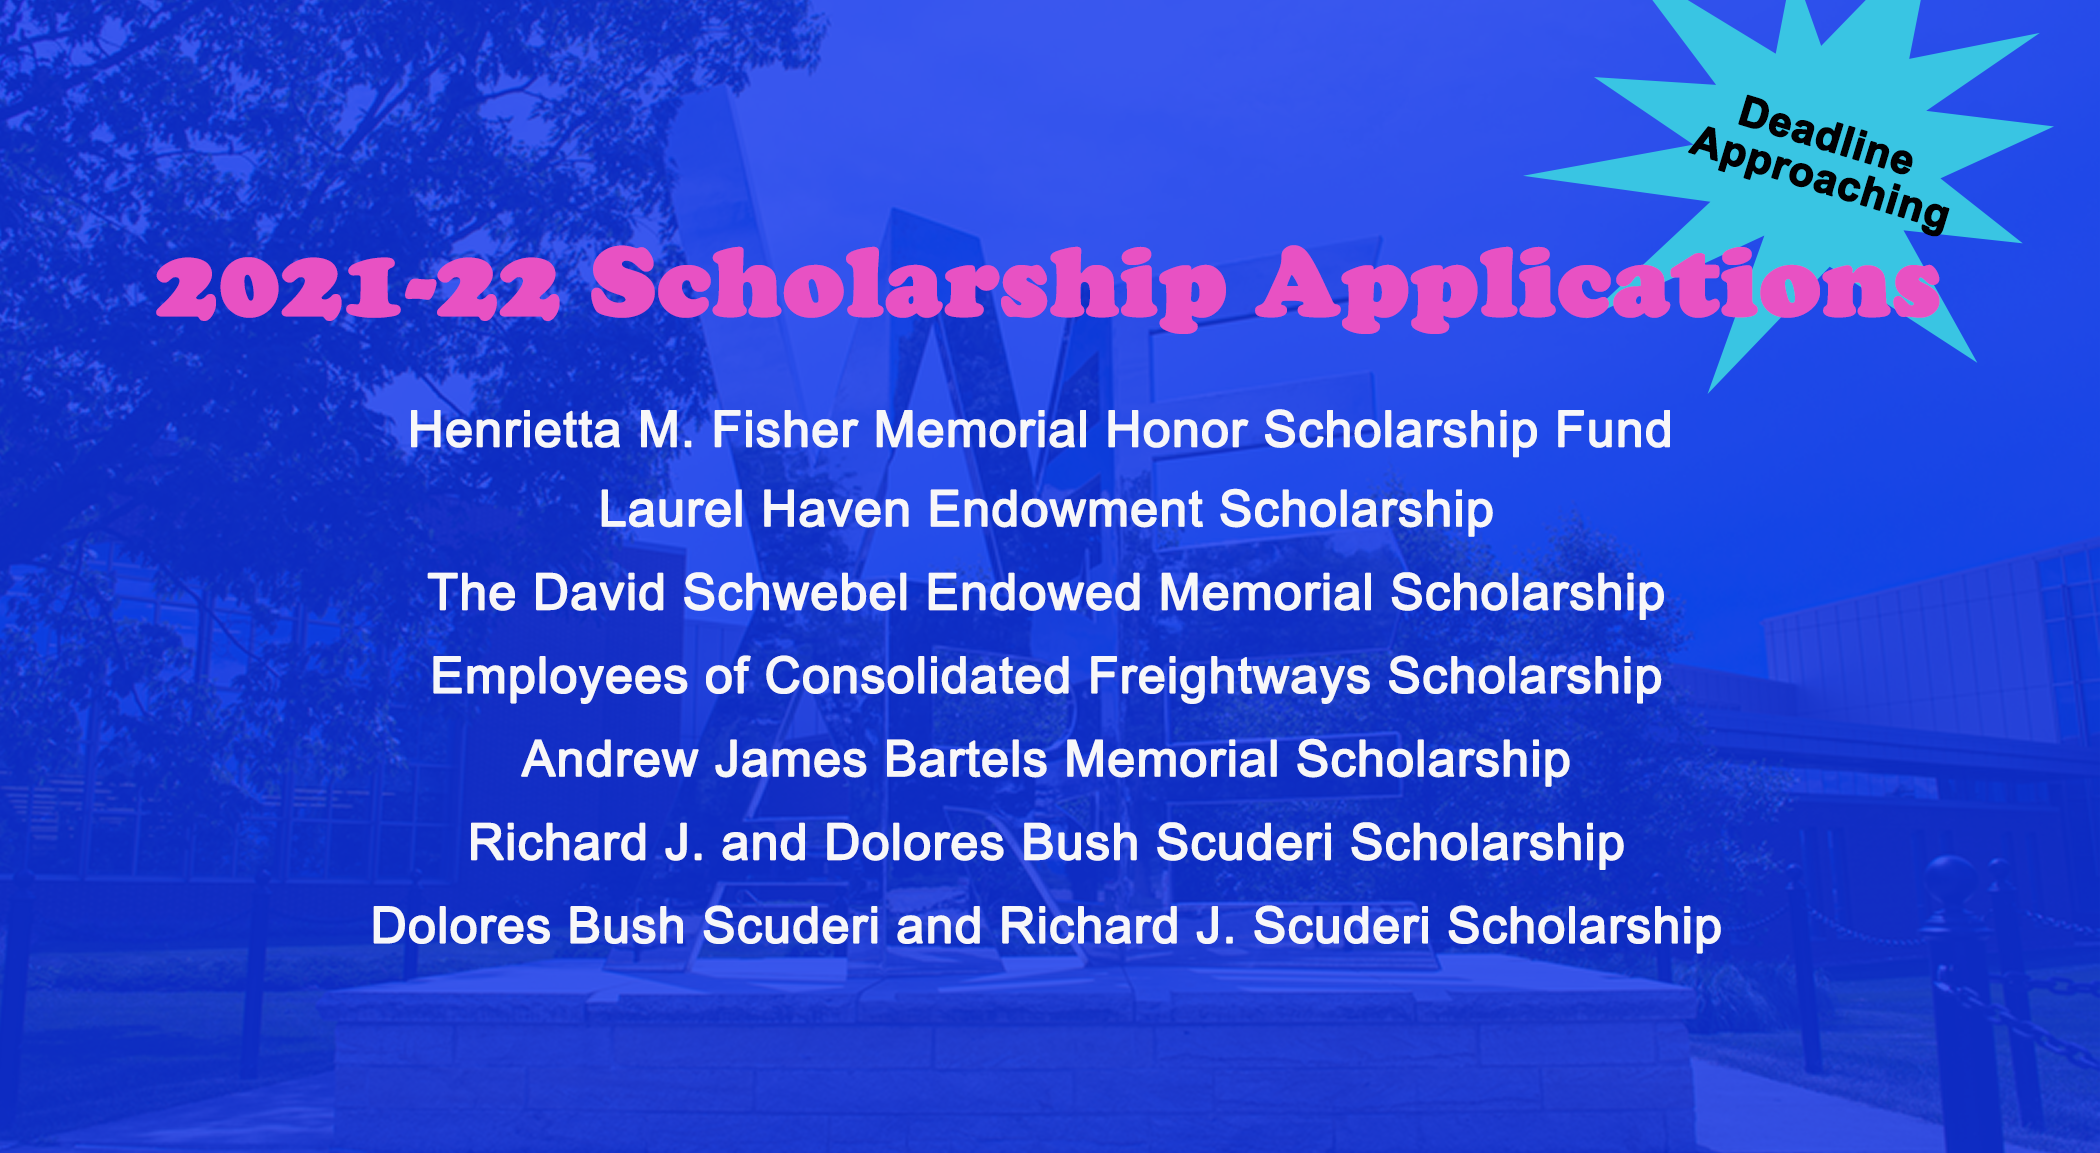 List of OSA scholarship applications available